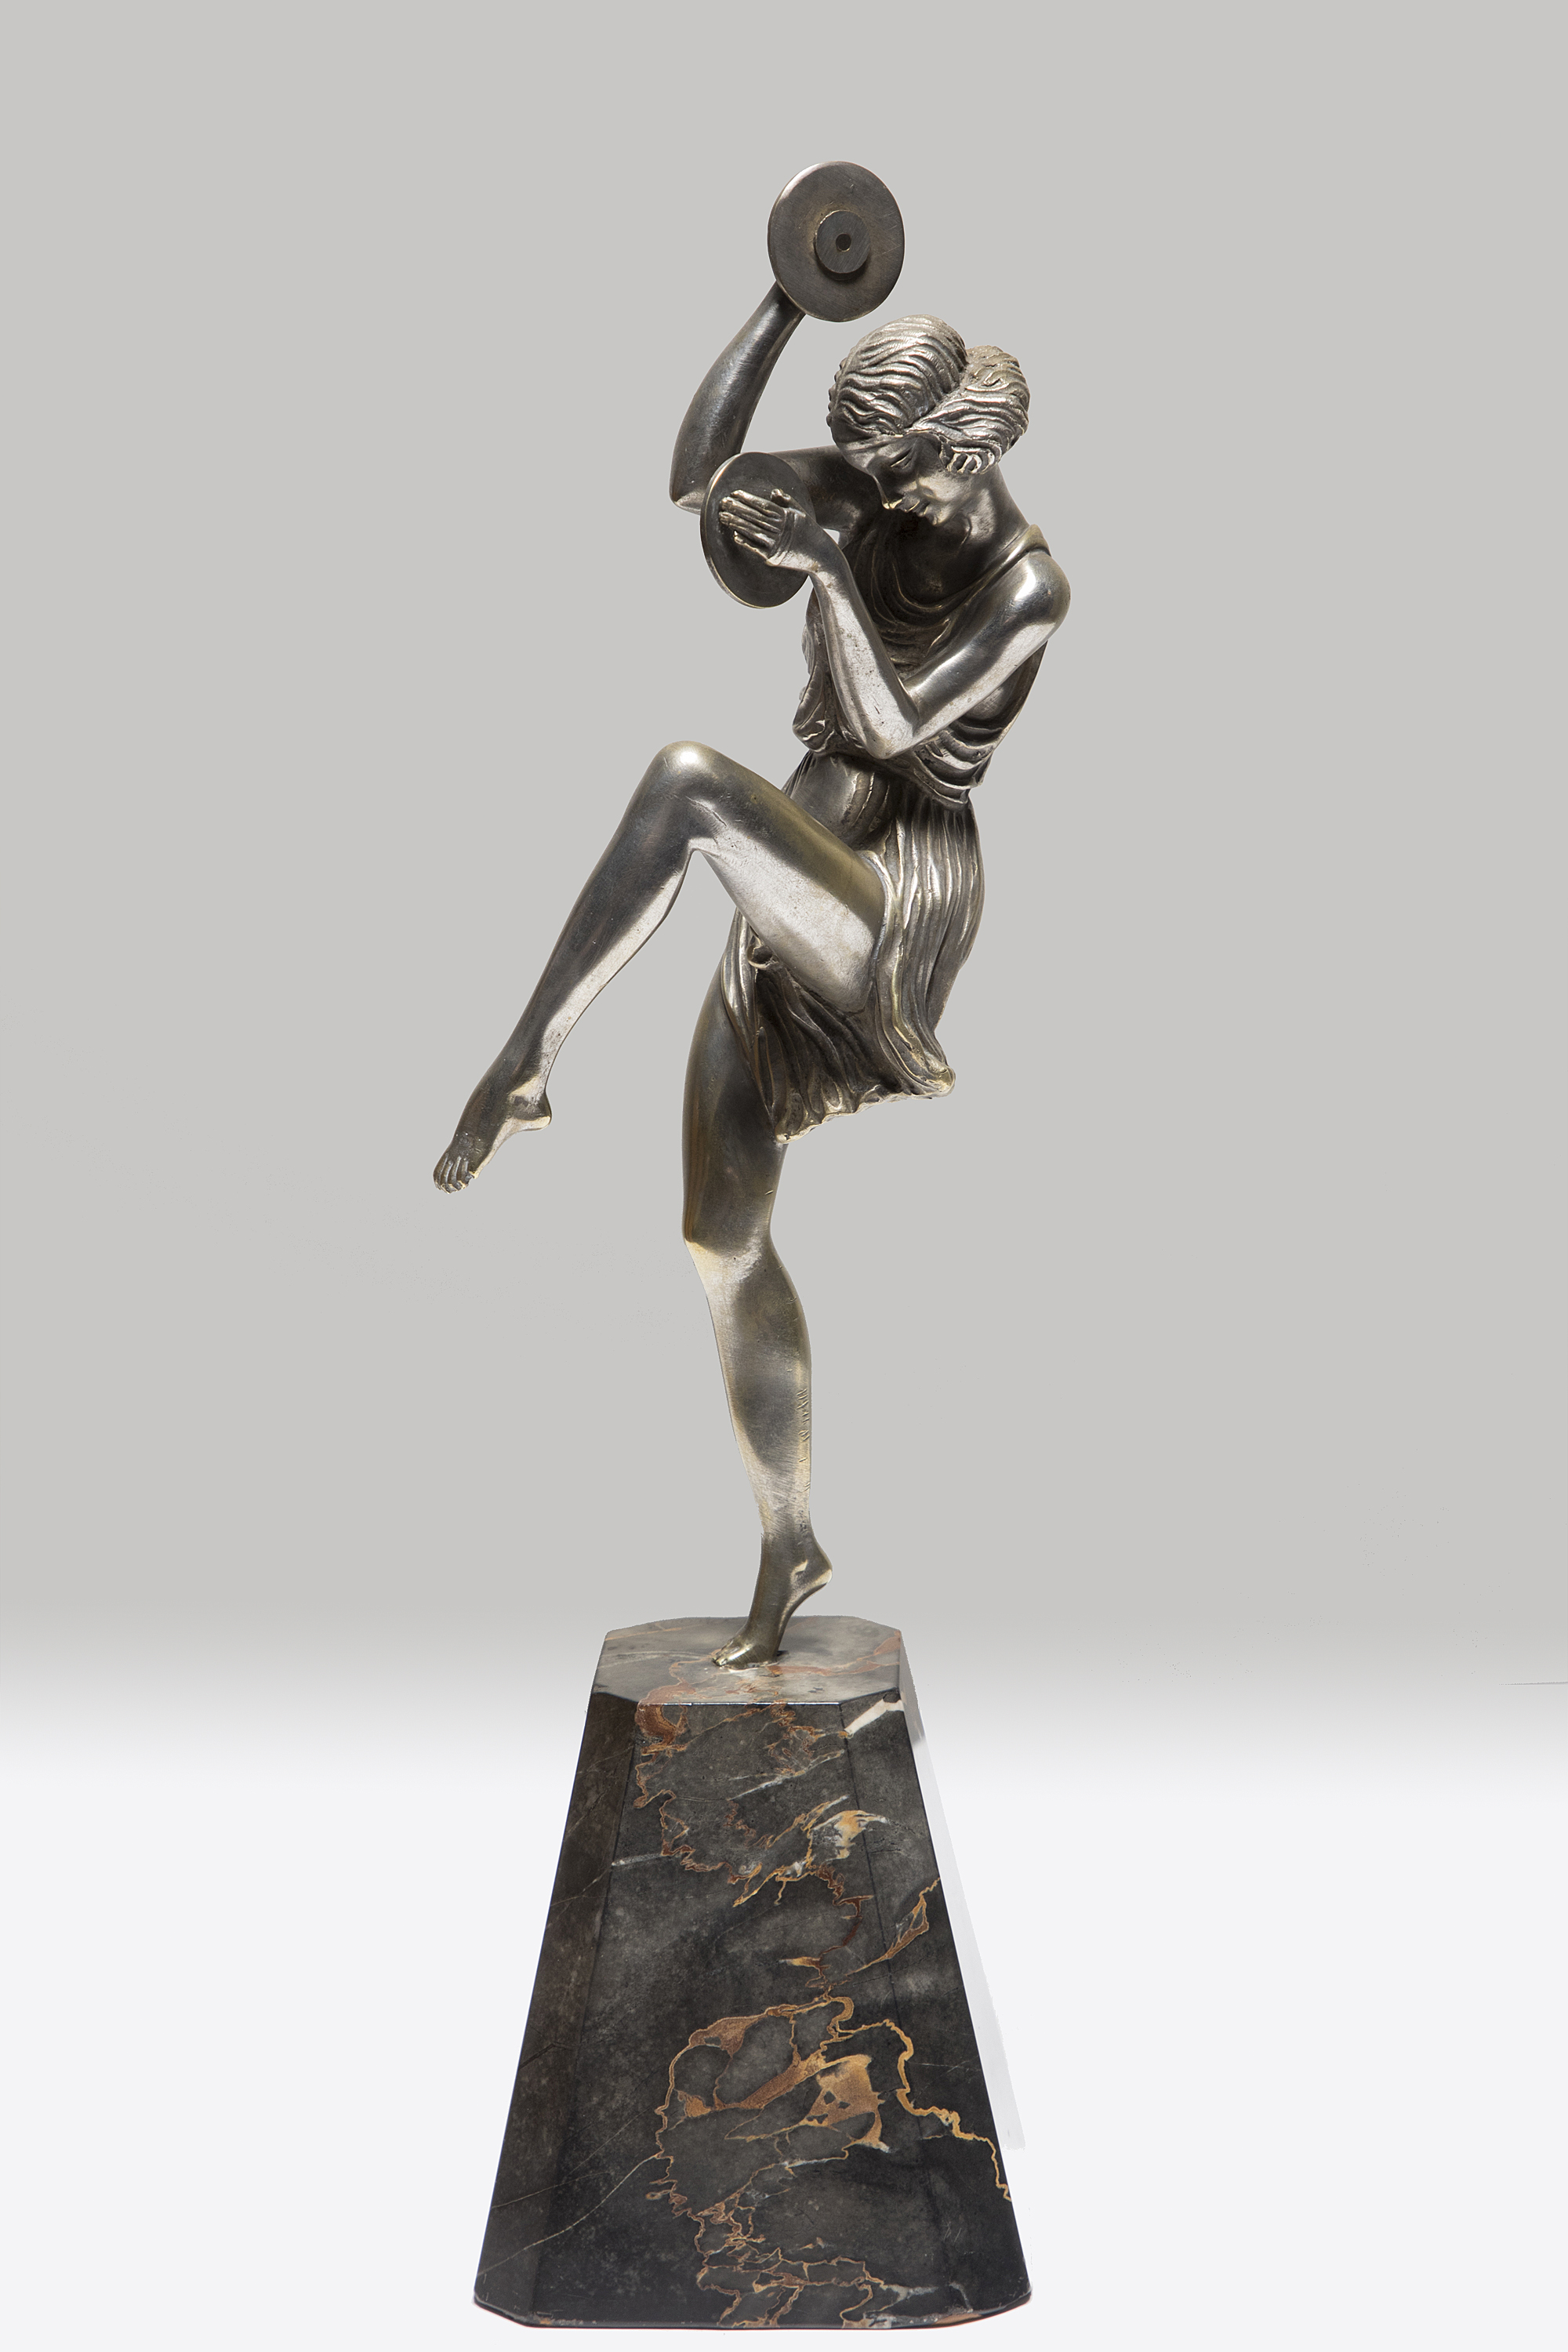 PIERRE Le FAGUAYS SILVERED BRONZE CYMBAL DANCER